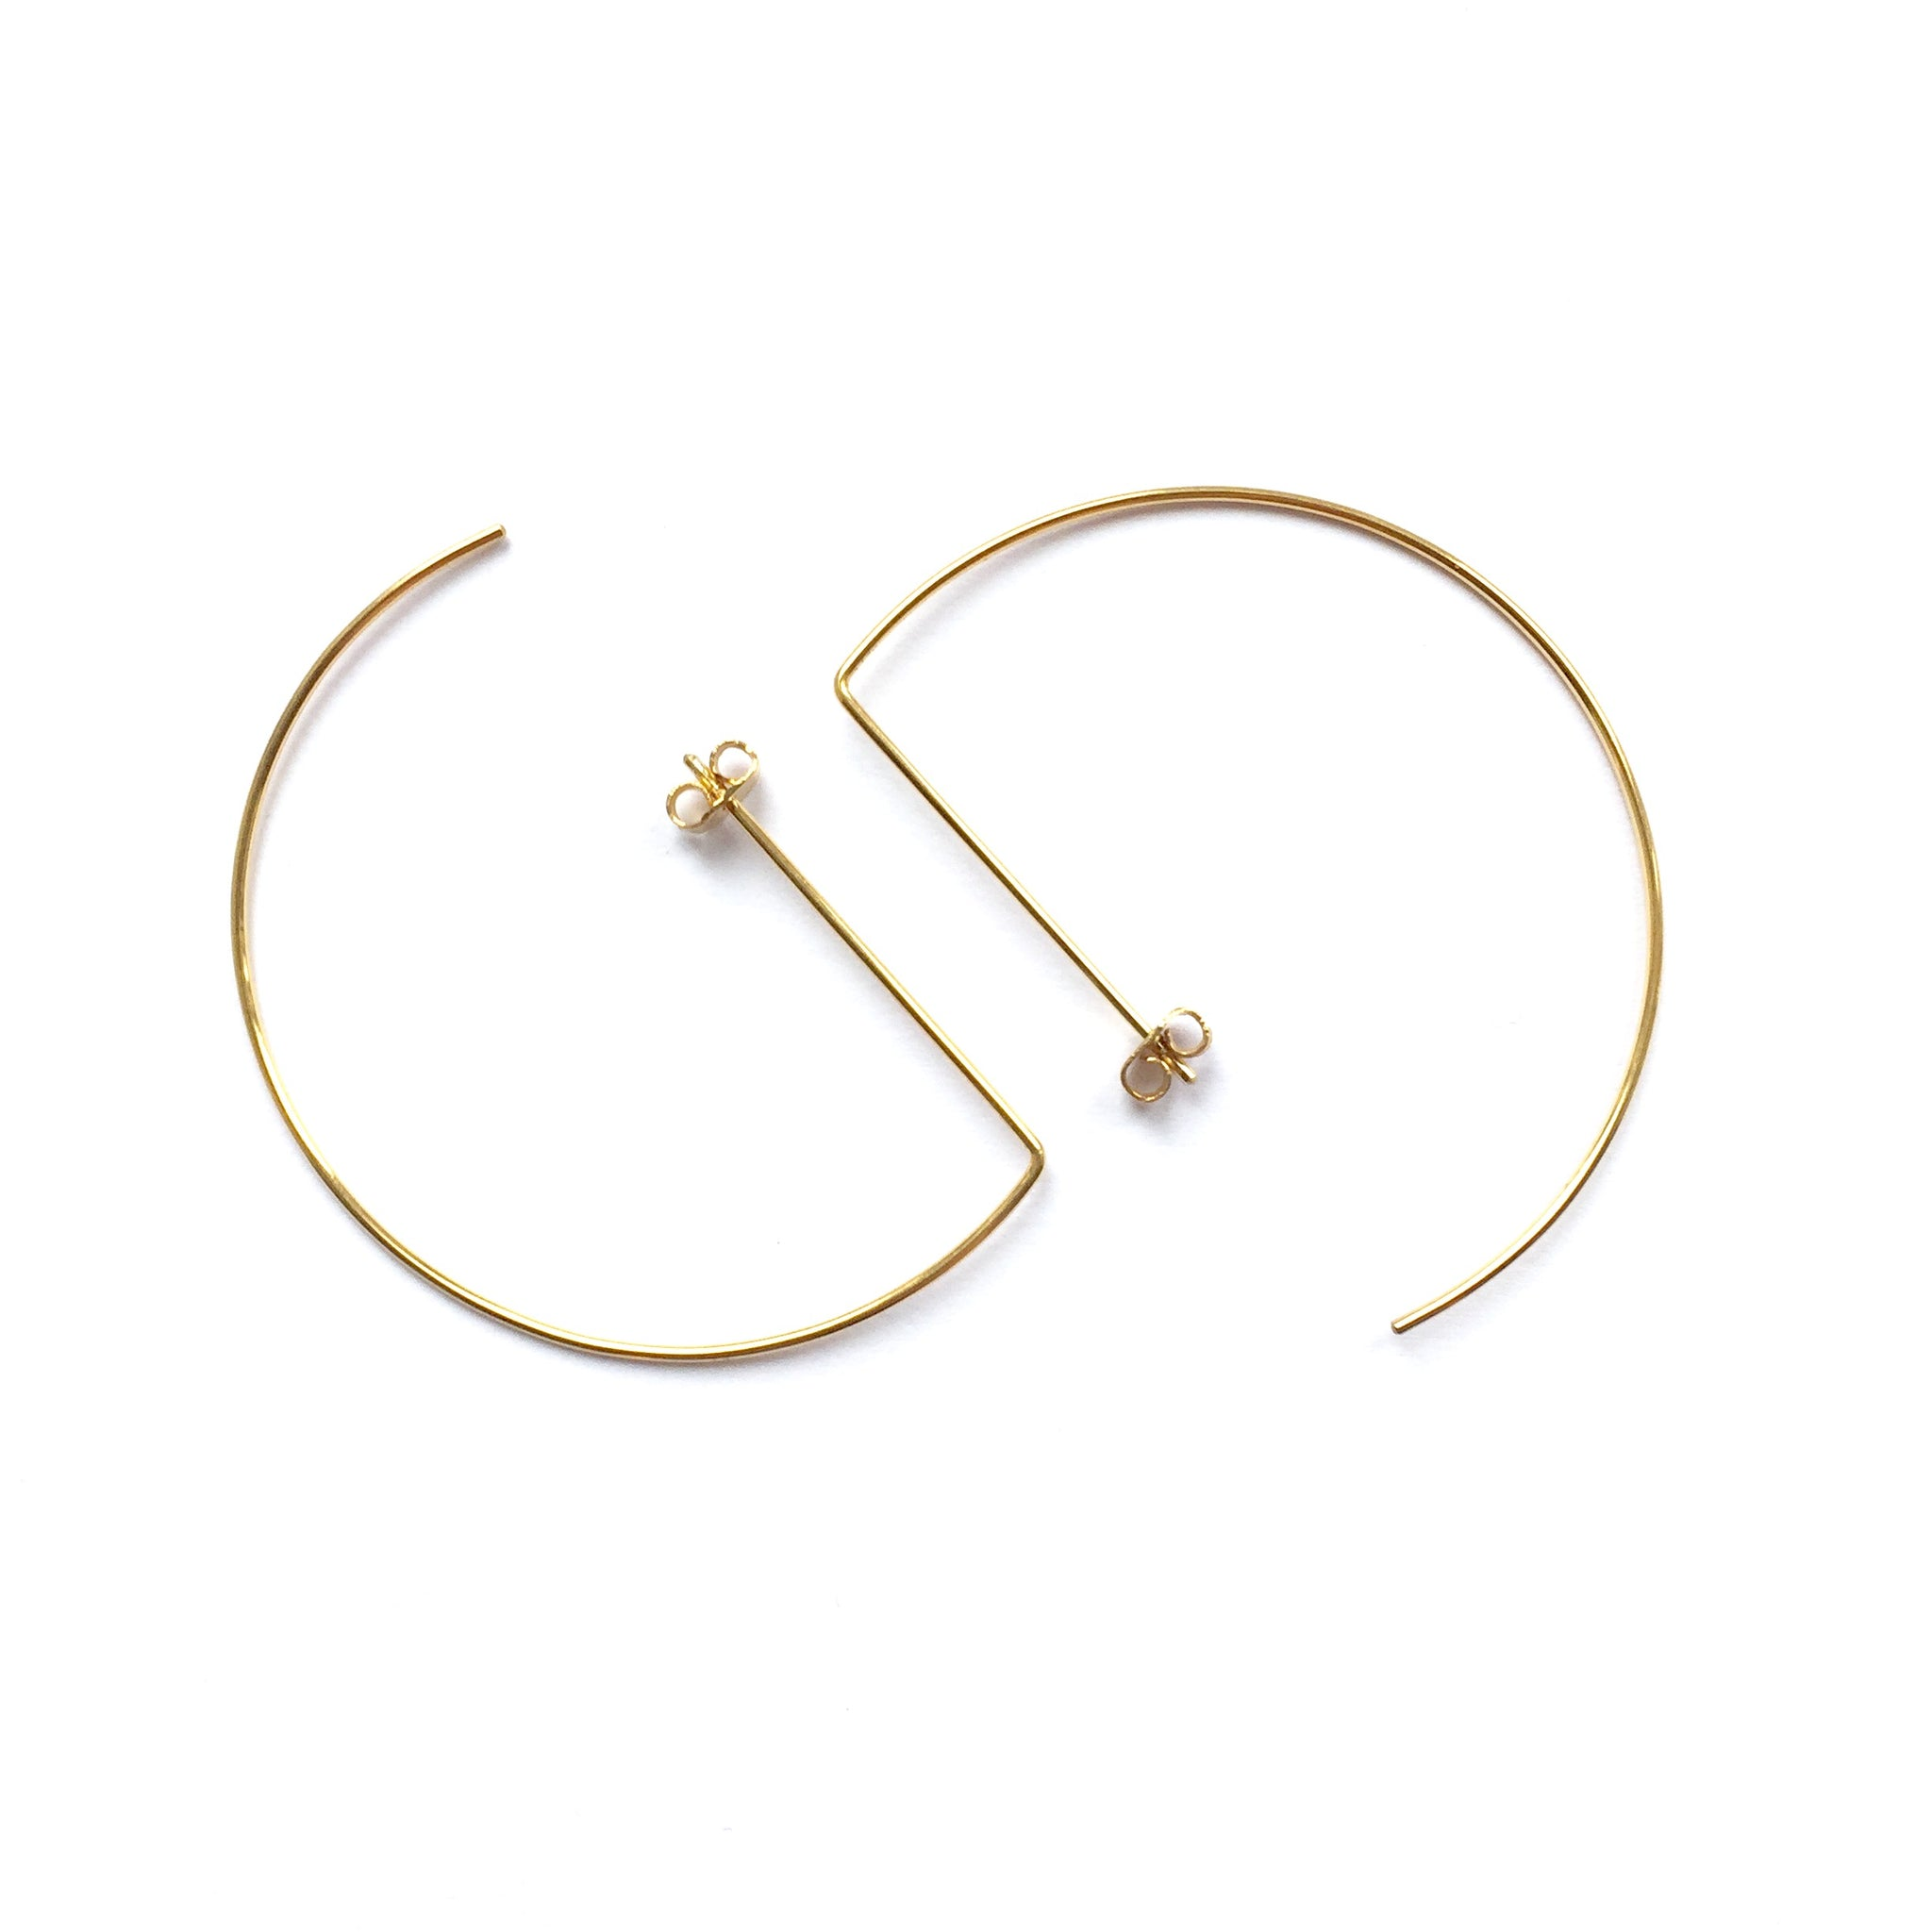 Bended Pin - Plateaux Jewellery